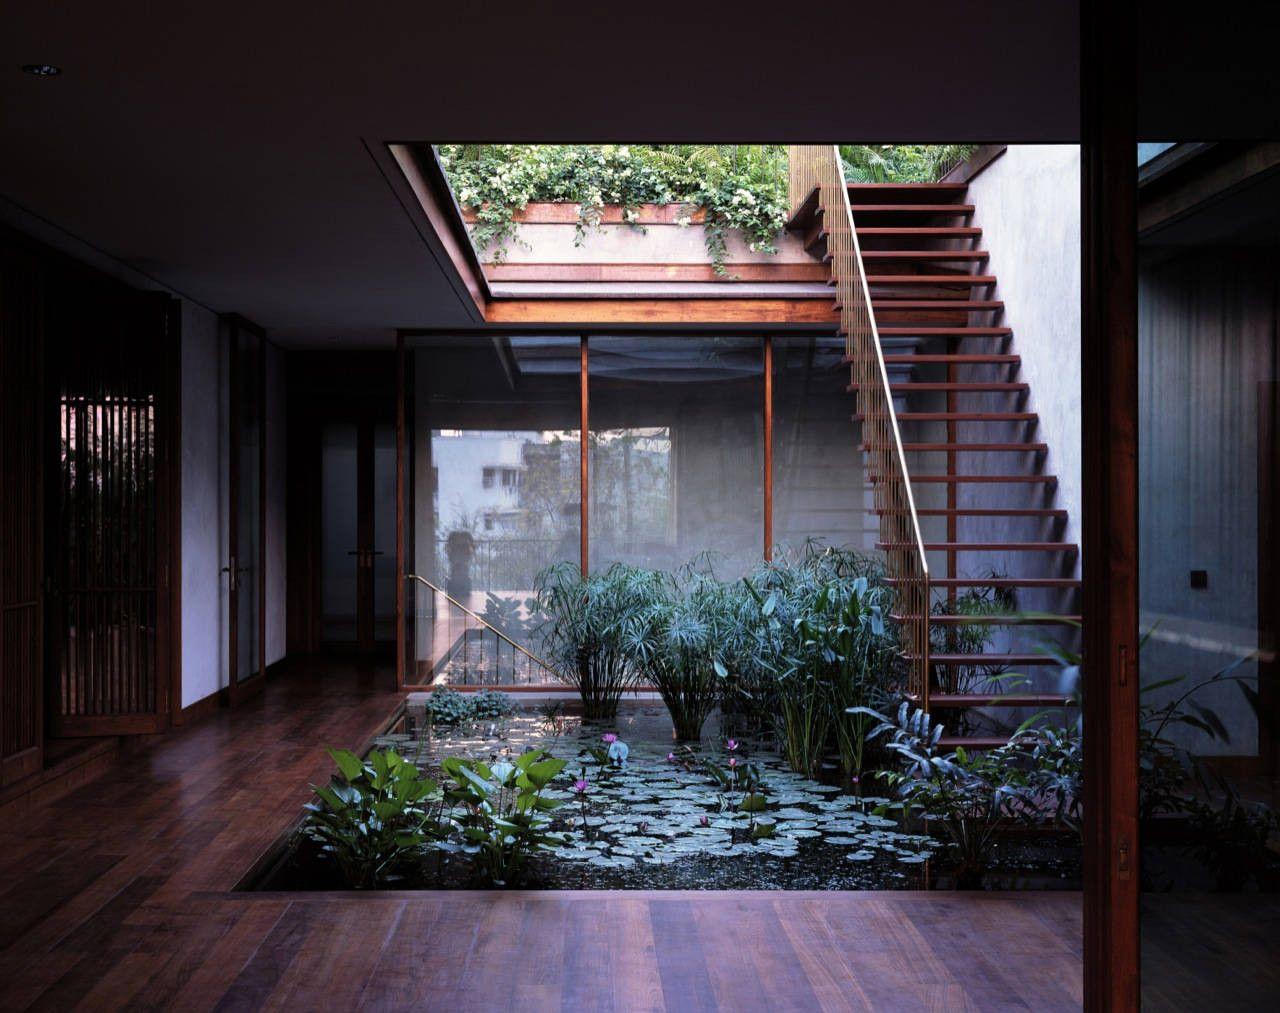 10 stunning structures with gorgeous inner courtyards for Interior courtyard designs ideas